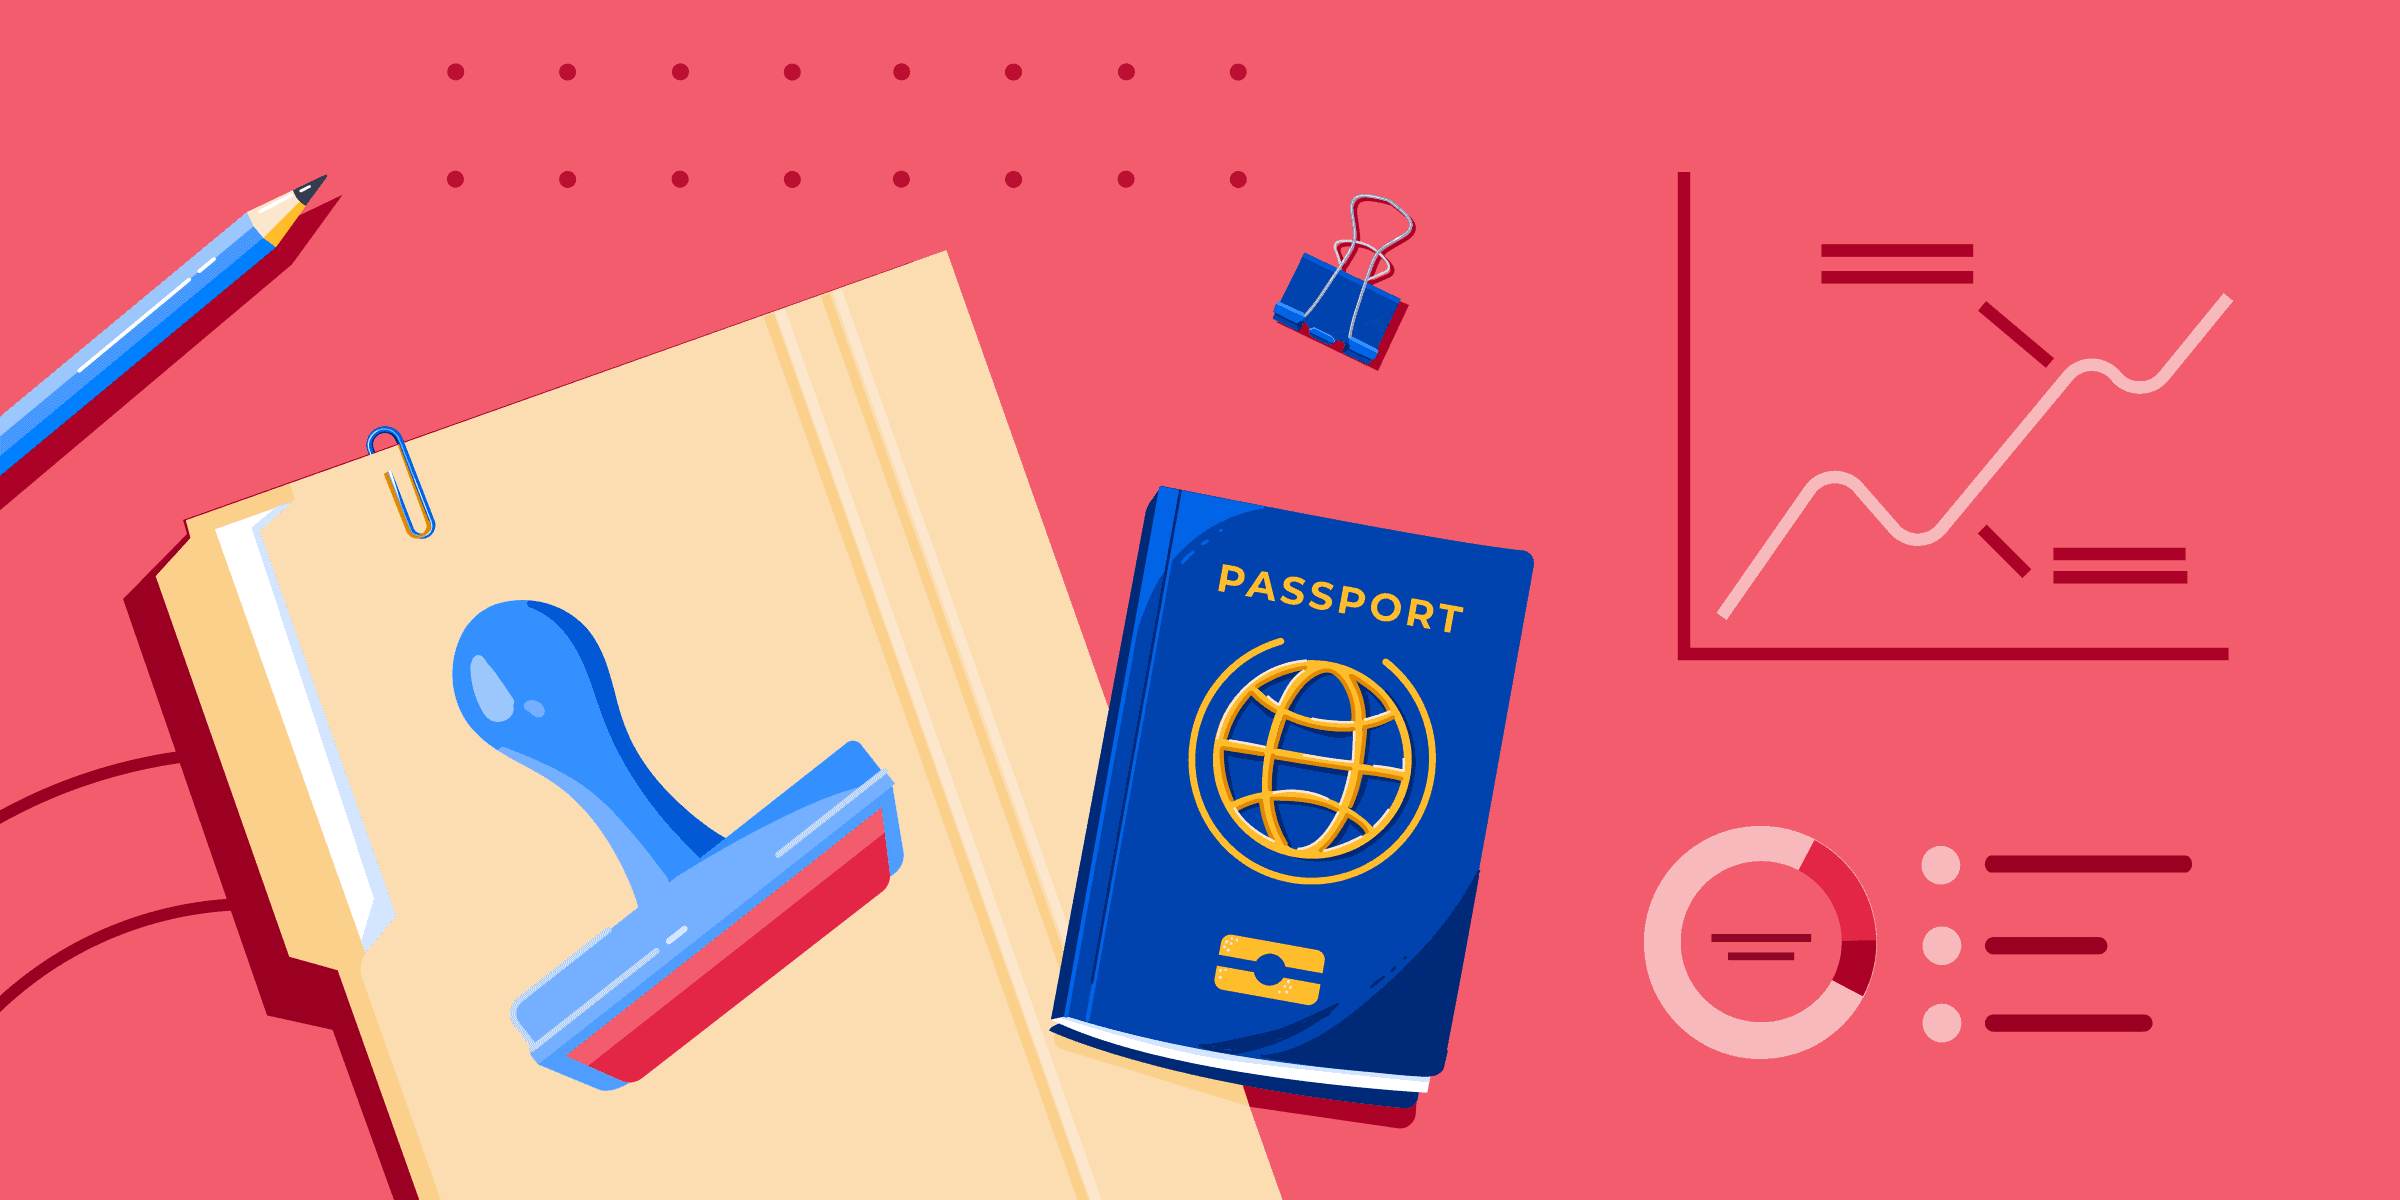 AI Retention banner with a file folder, stamp, passport, and generic charts